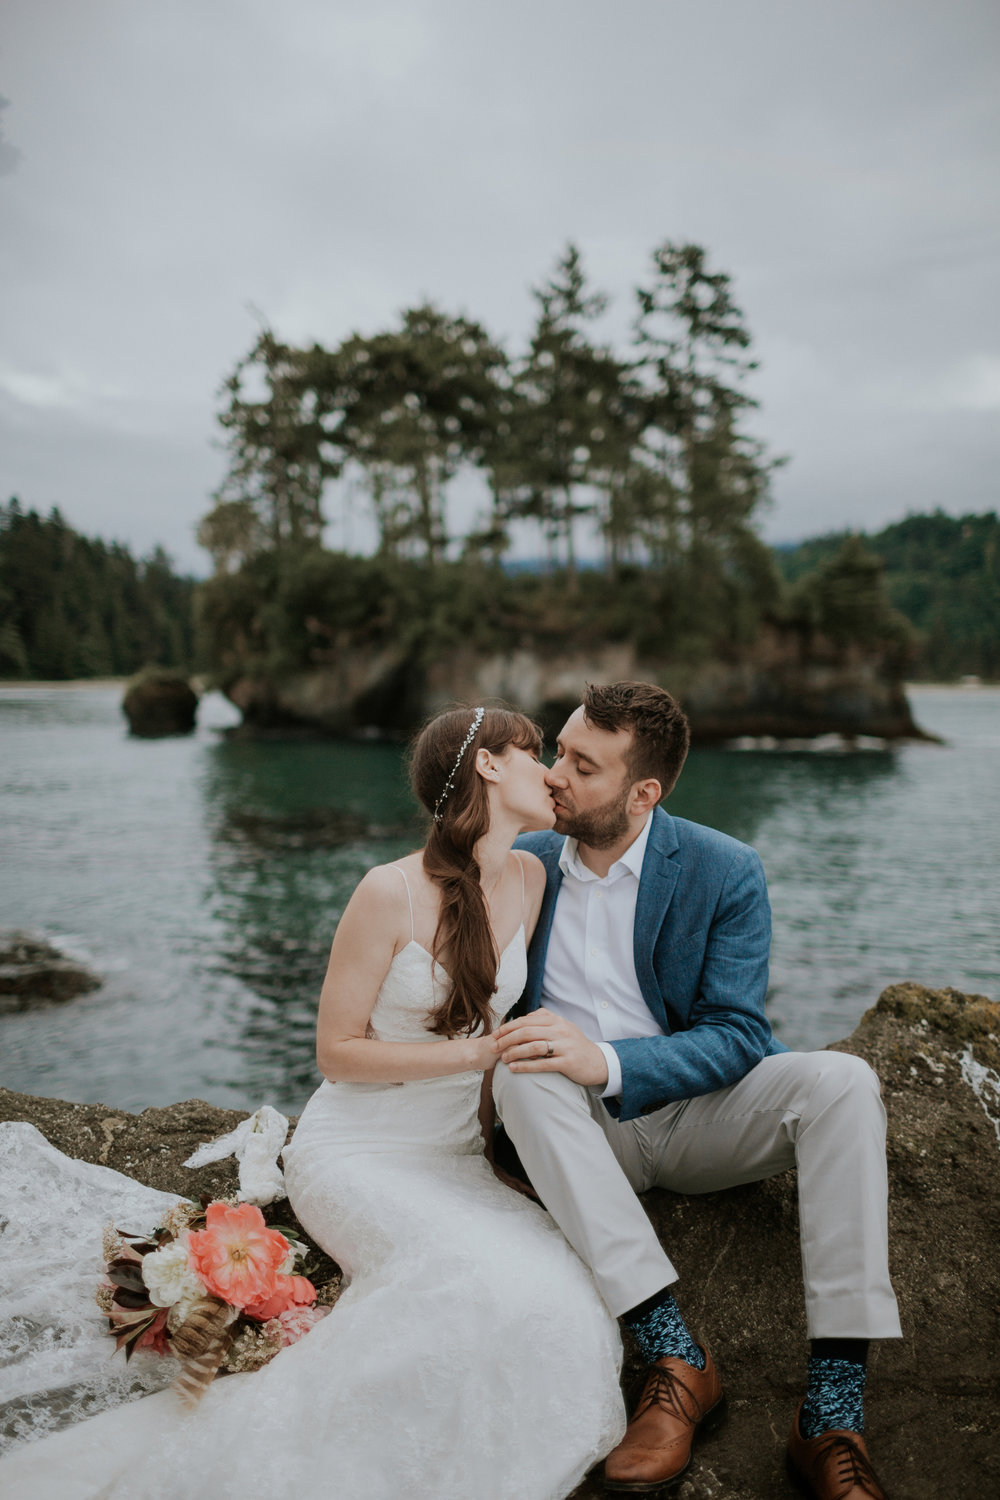 PNW-elopement-wedding-engagement-olympic national park-port angeles-hurricane ridge-lake crescent-kayla dawn photography- photographer-photography-kayladawnphoto-321.jpg